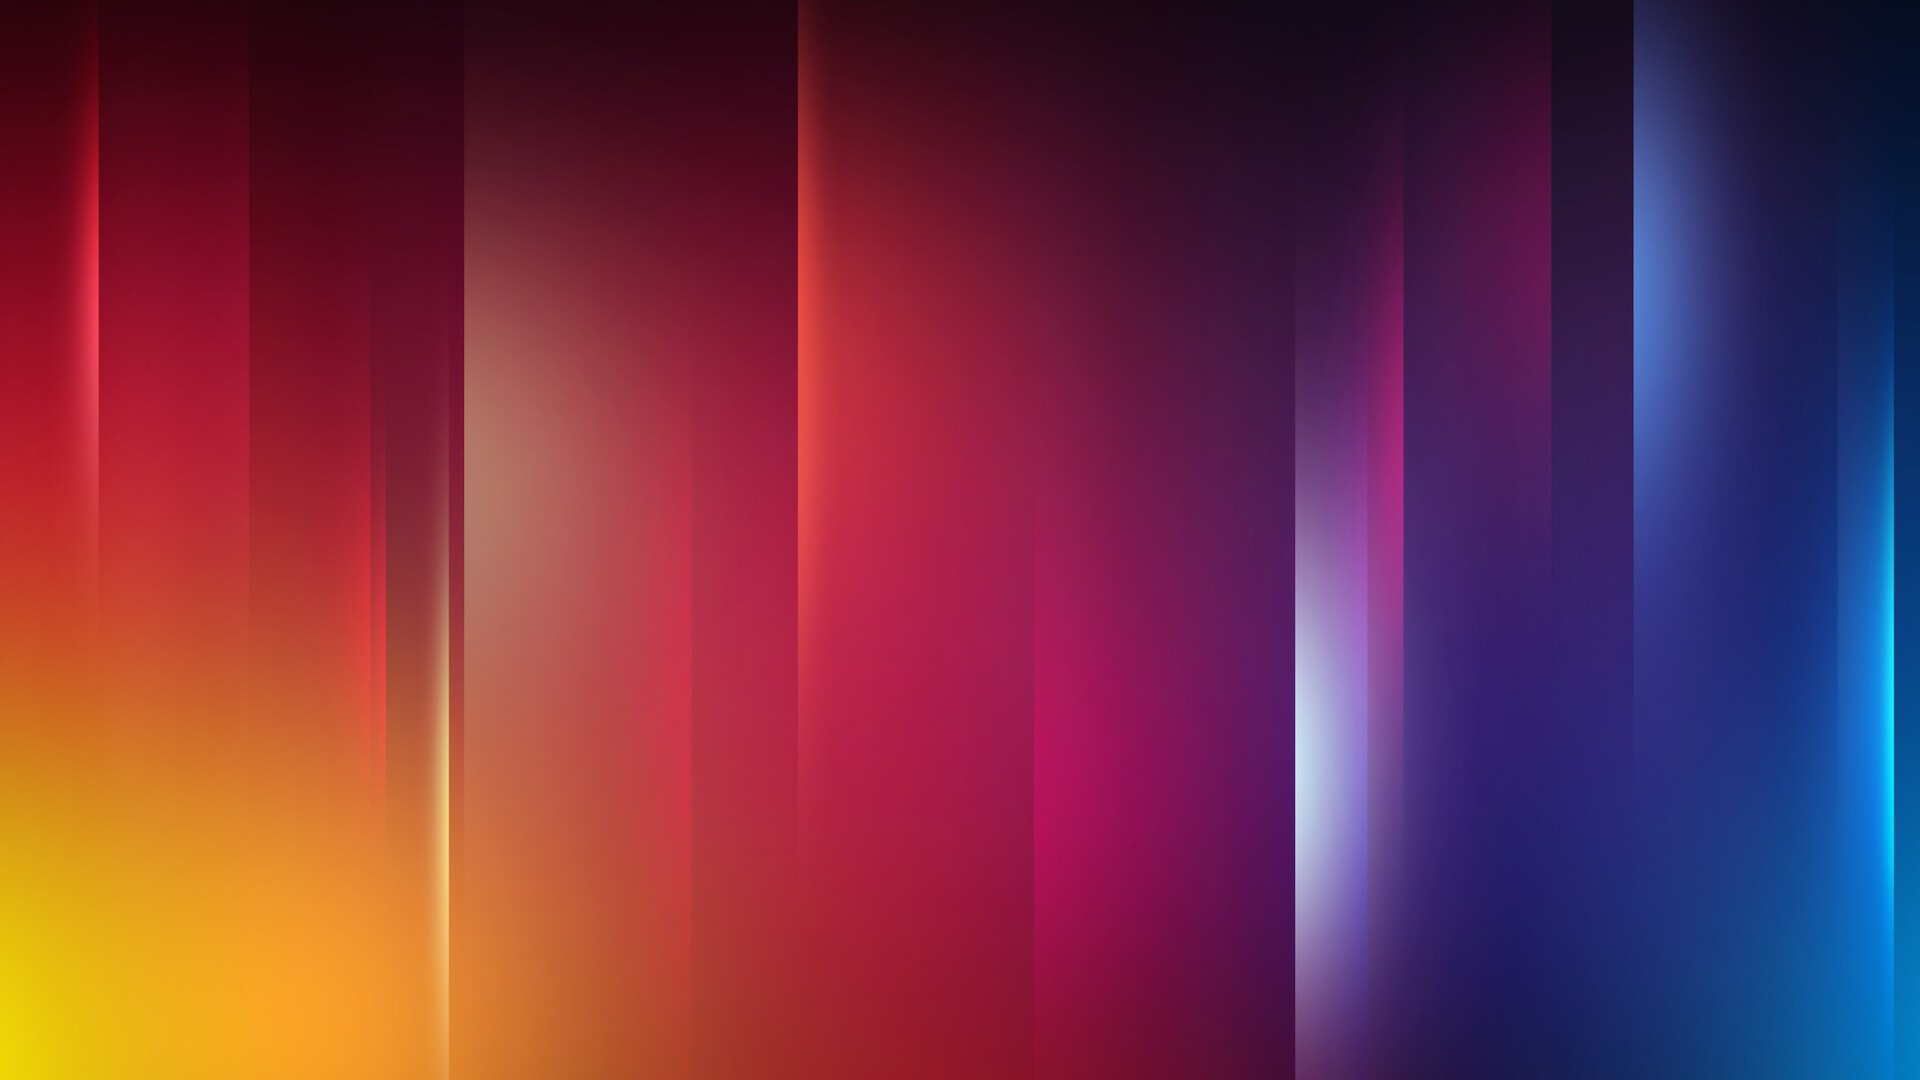 1920x1080 colors abstract background laptop full hd 1080p hd 4k